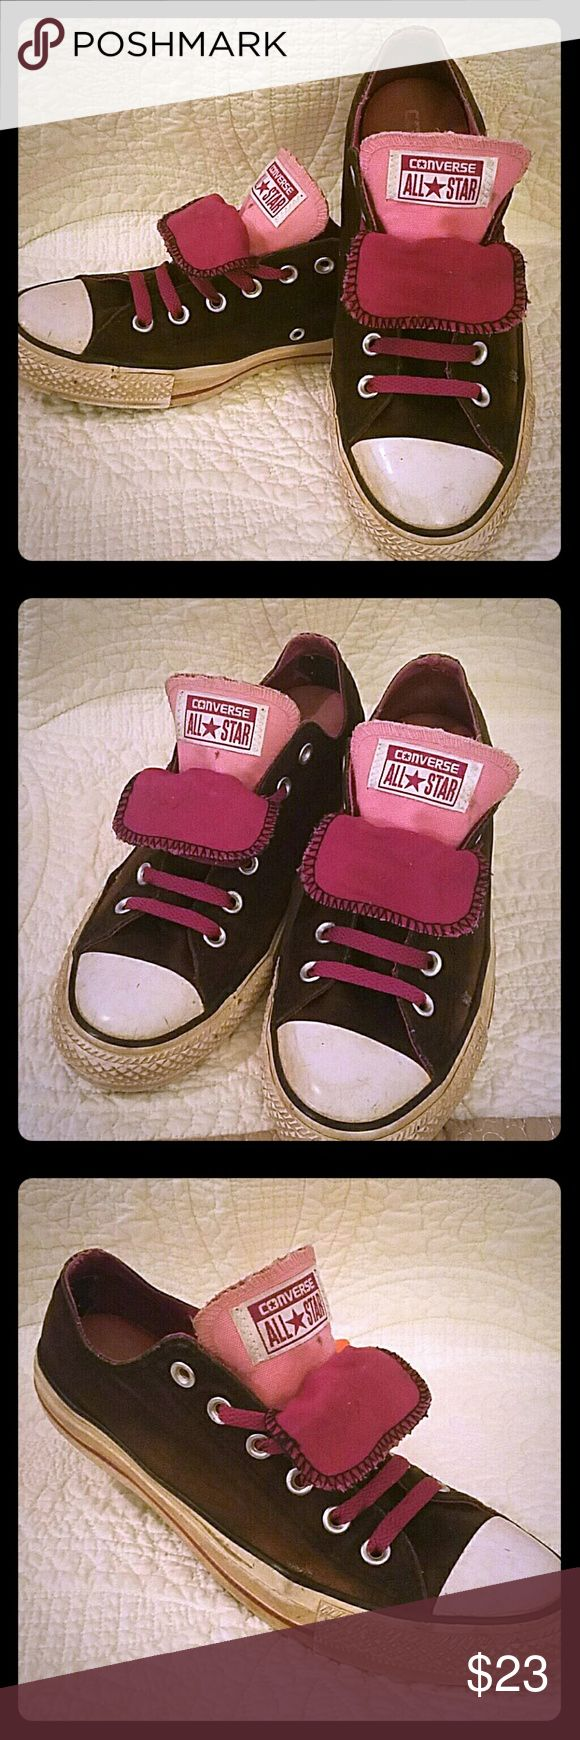 Ladies Converse All Star Sneakers Super cute Converse with a lot of life left. Purple, black and pink. Converse Shoes Sneakers